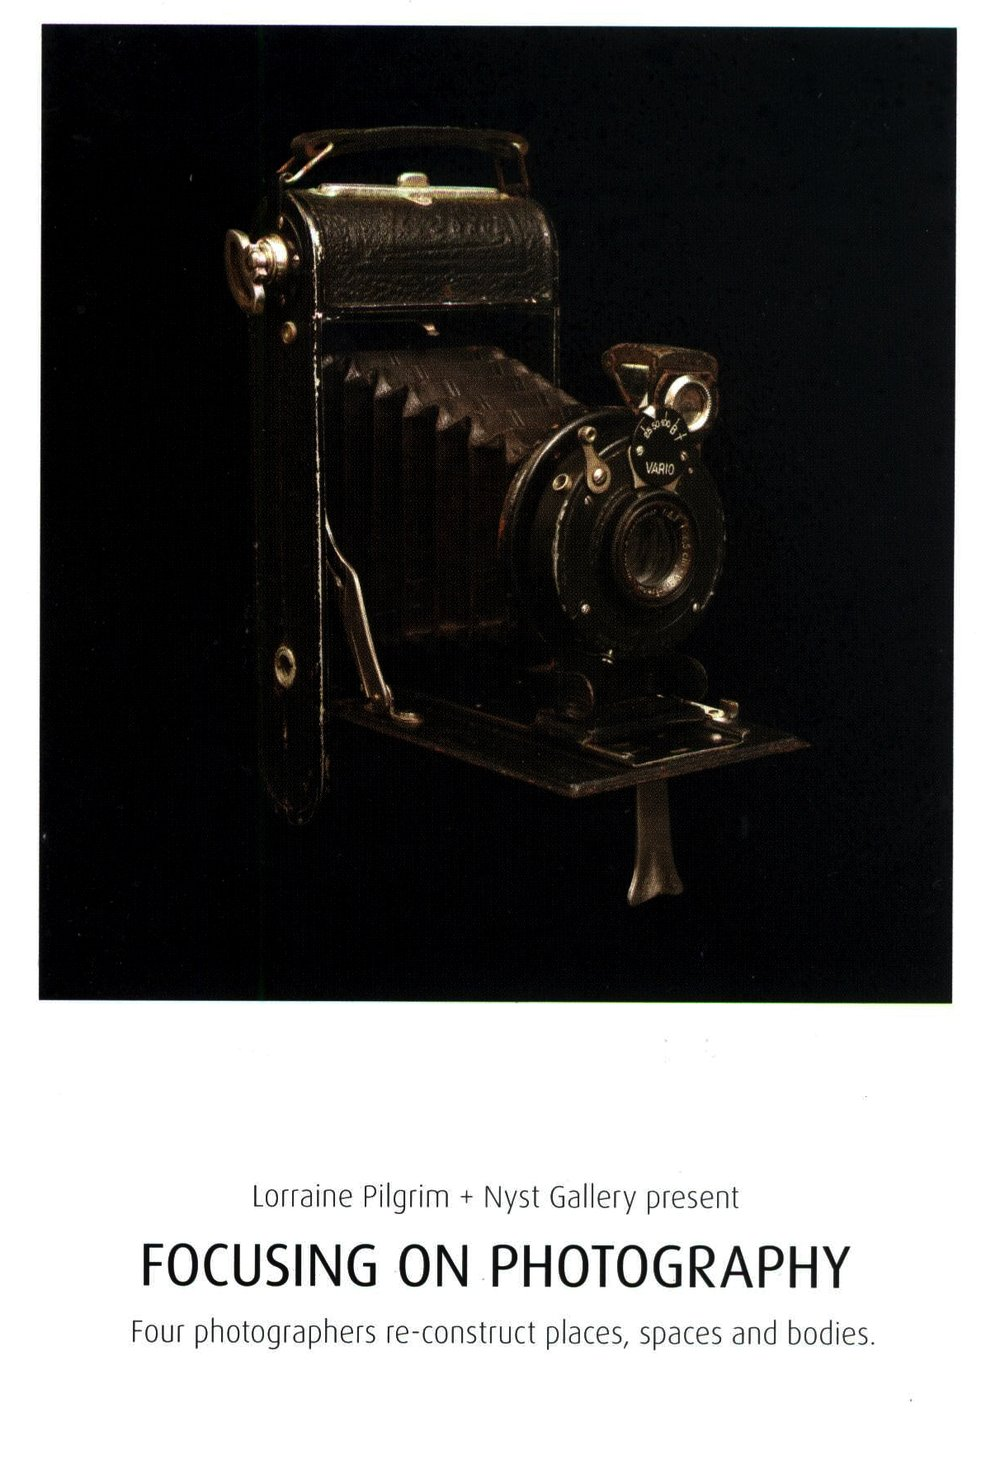 Focusing on Photography exhibition at Lorraine Pilgrim Gallery